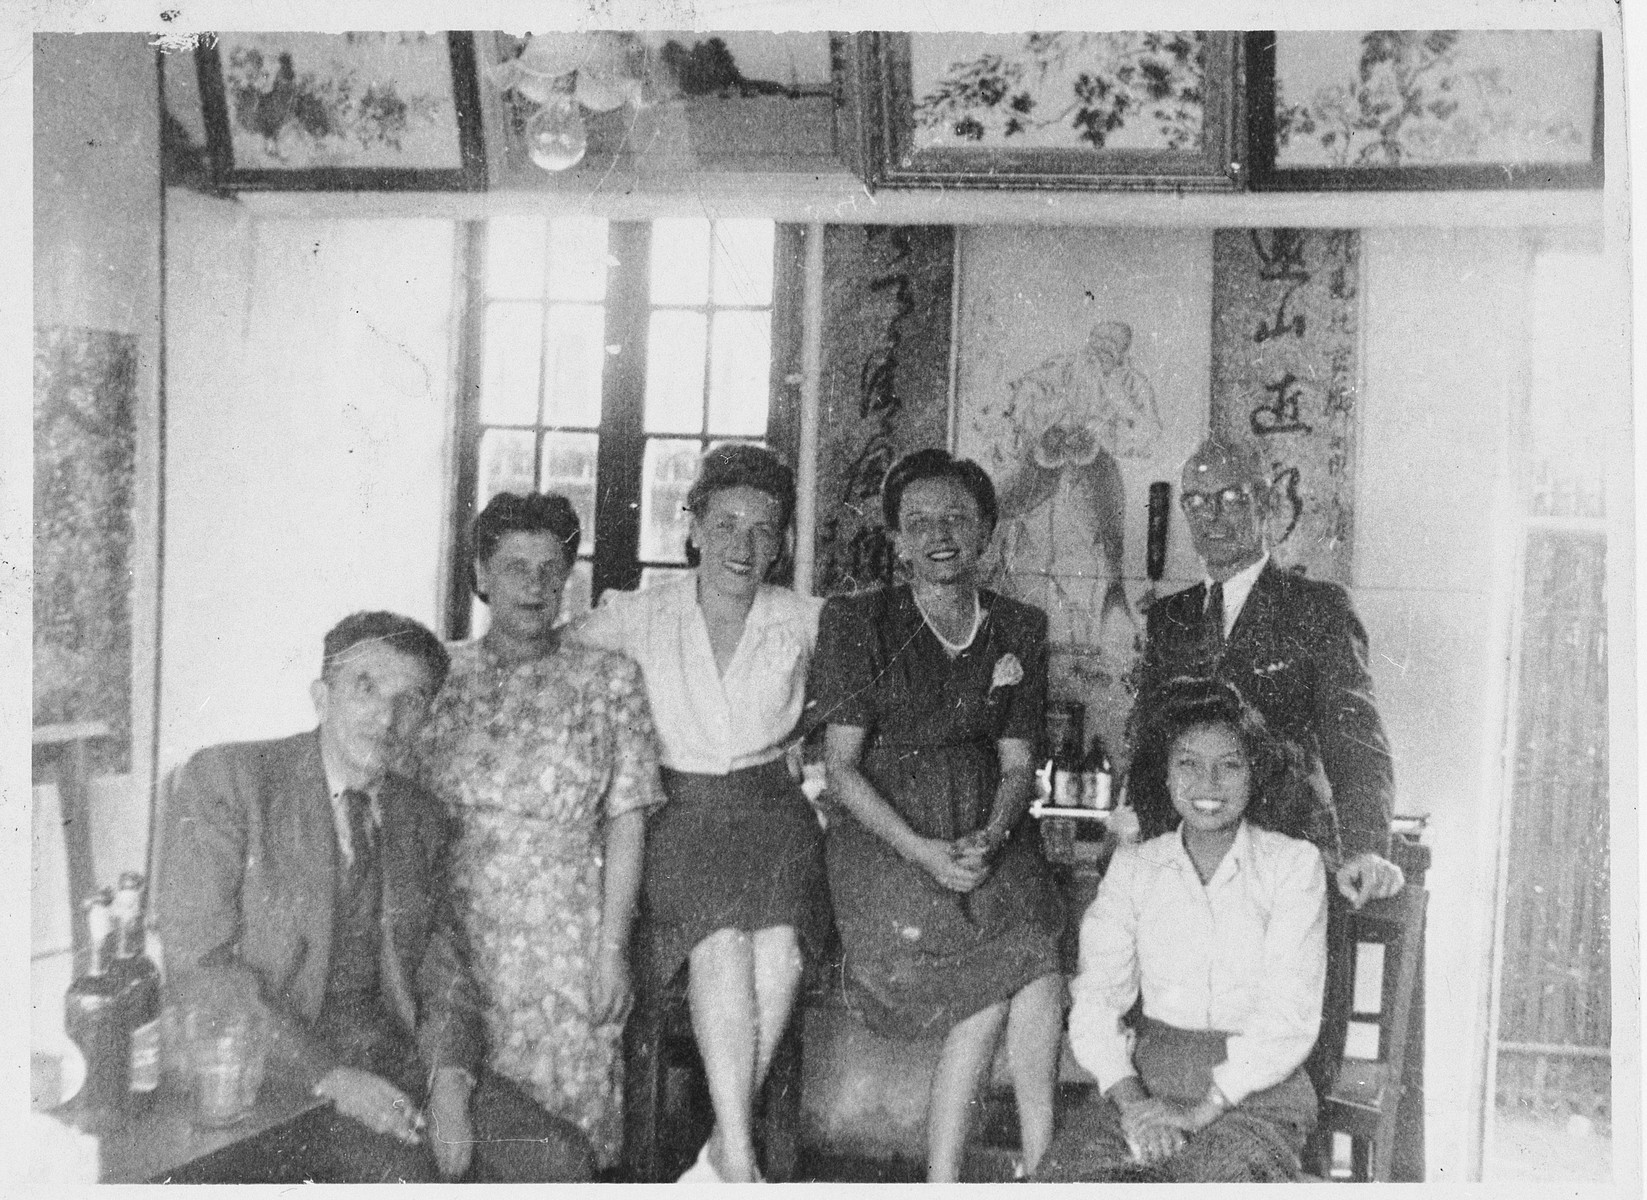 Group portrait of Jewish refugees and a Chinese woman inside a home in Shanghai.  Pictured on the left are Rudolf and Ana Brosan.